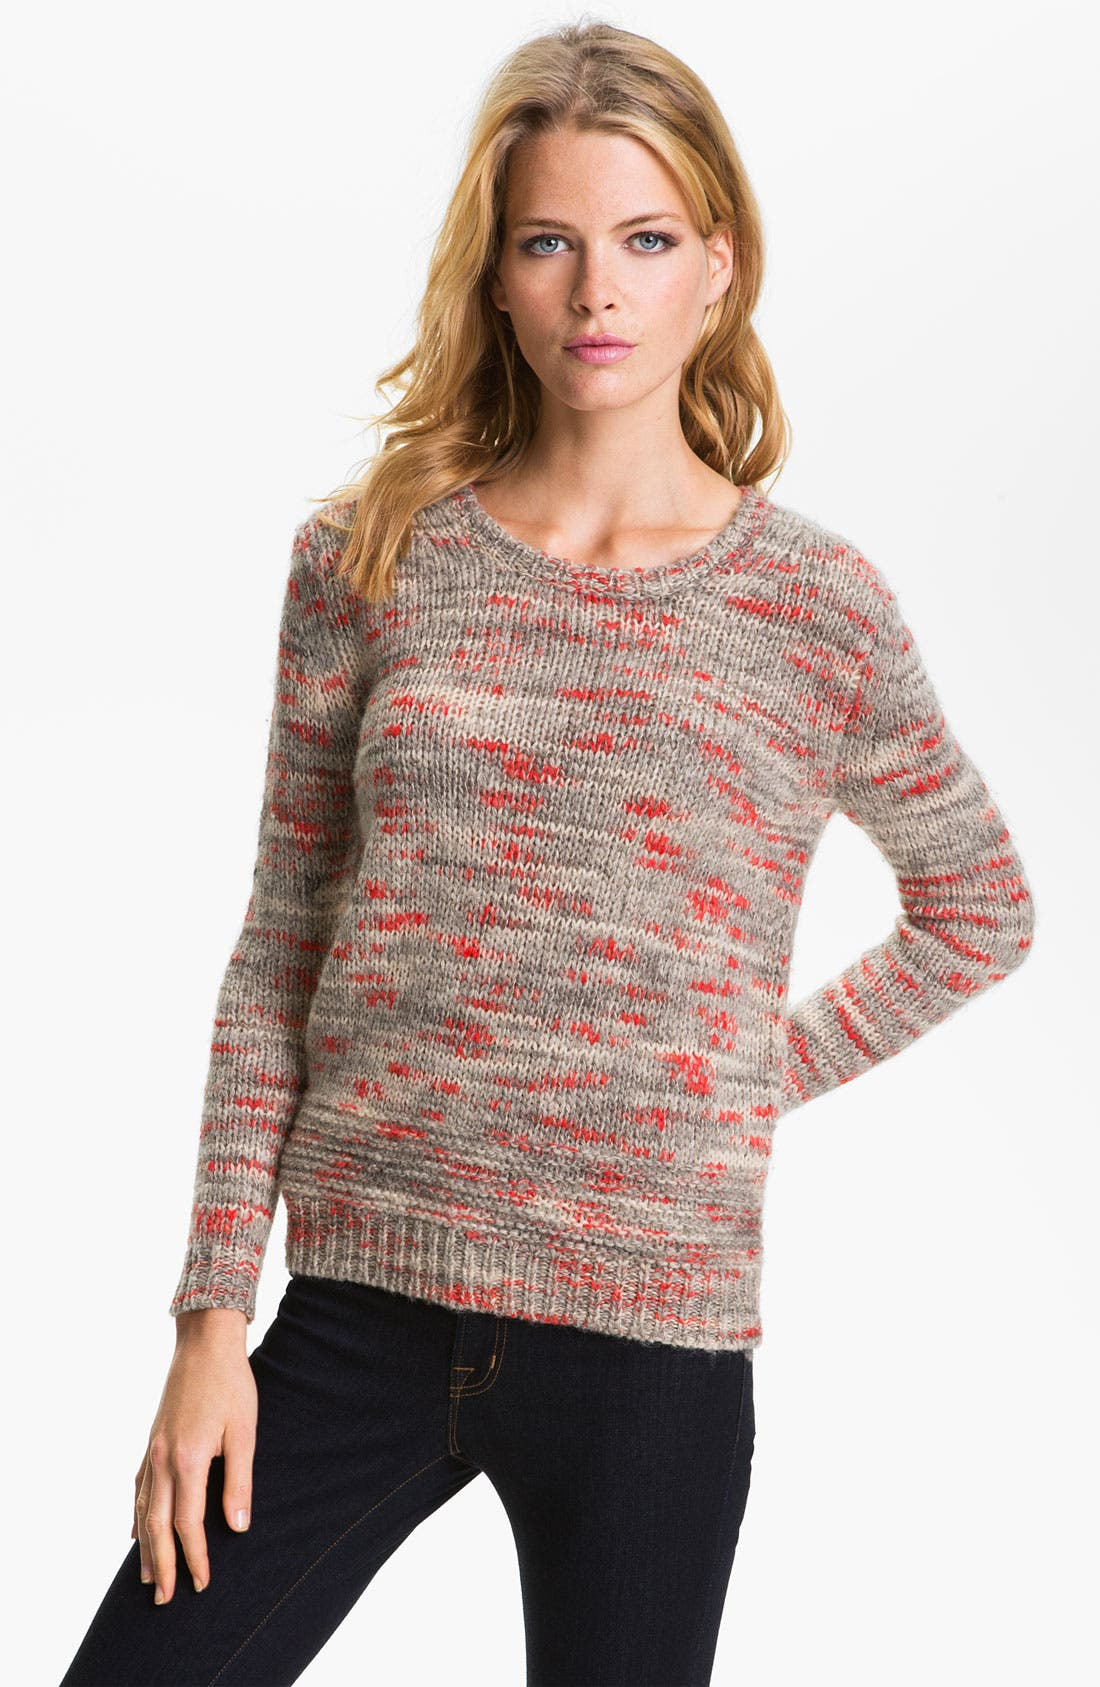 Alternate Image 1 Selected - Theory 'Jaidyn B.' Marled Sweater (Online Exclusive)